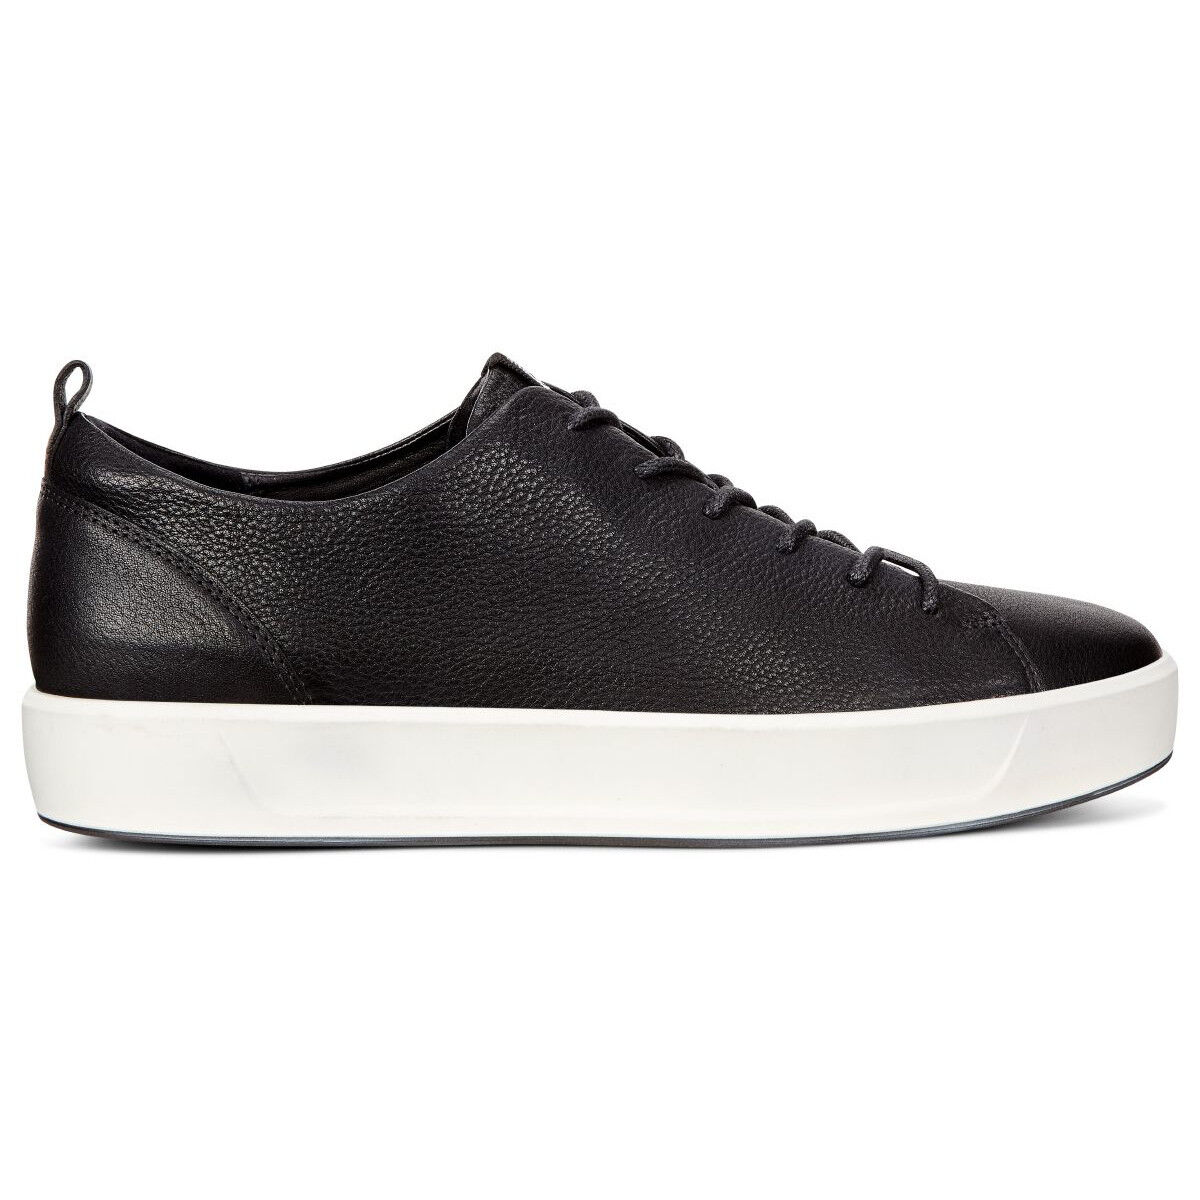 Sneakers for Men On Sale, Black, Leather, 2017, 10 6 6.5 8 9 Tod's